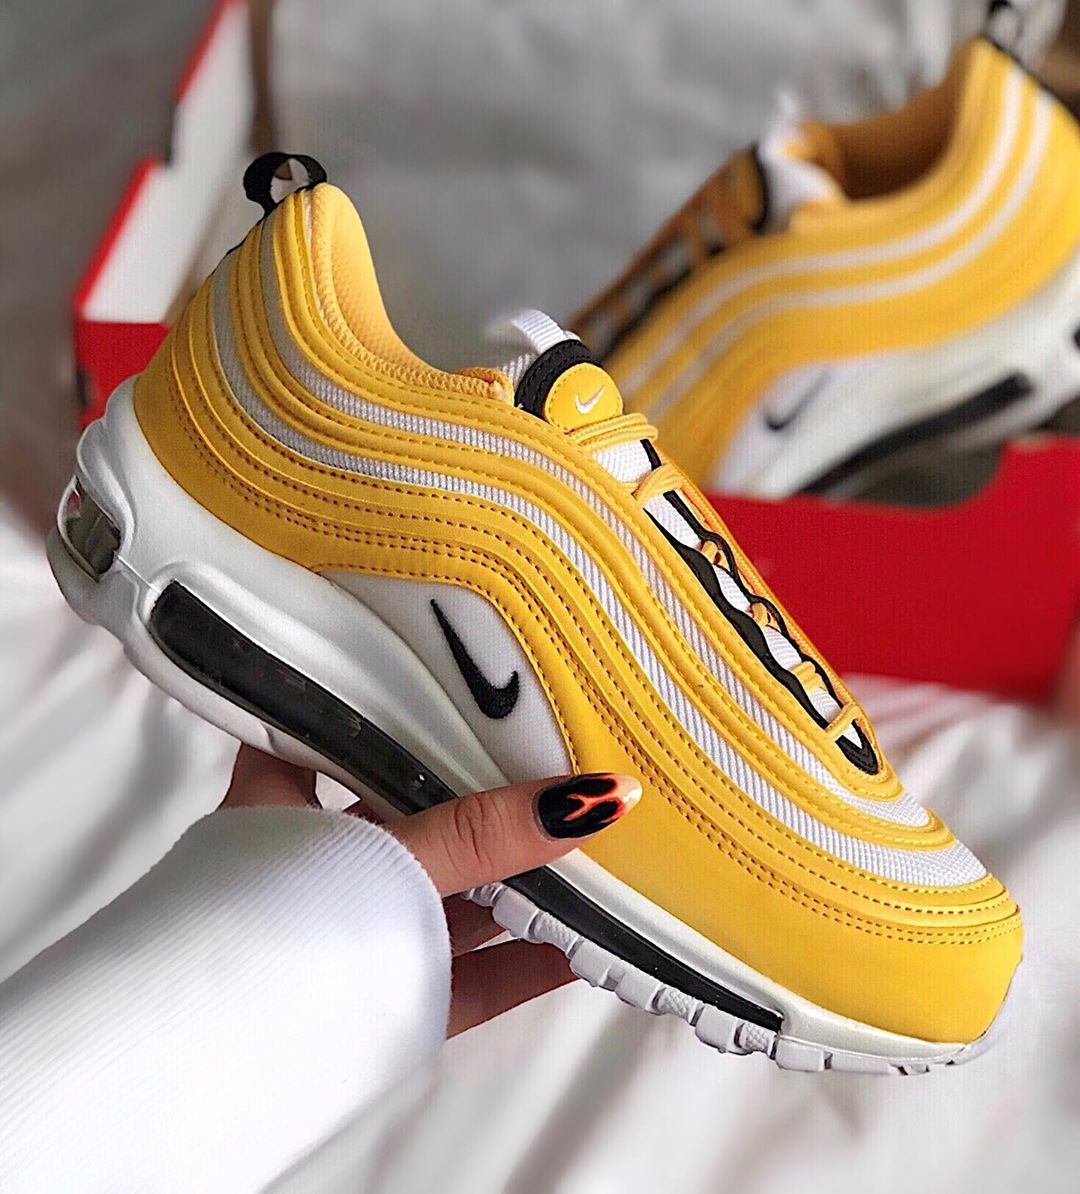 Nike air max 97, Nike shoes outfits